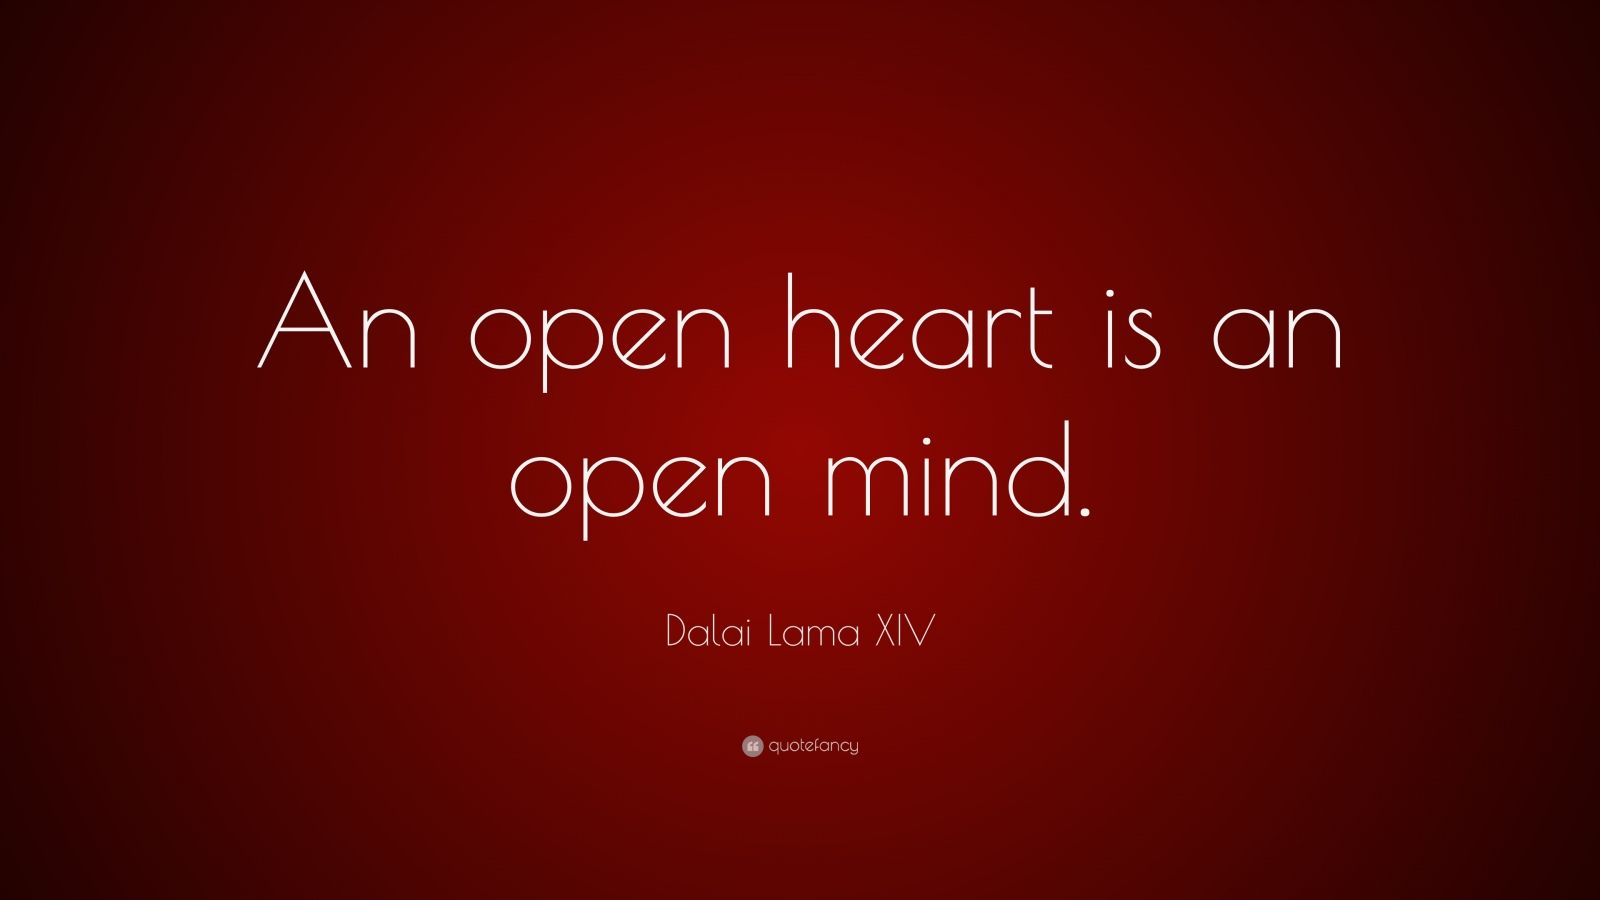 Dalai Lama Xiv Quotes Open Heart Quotes Open Minded Quotes Mindfulness Quotes